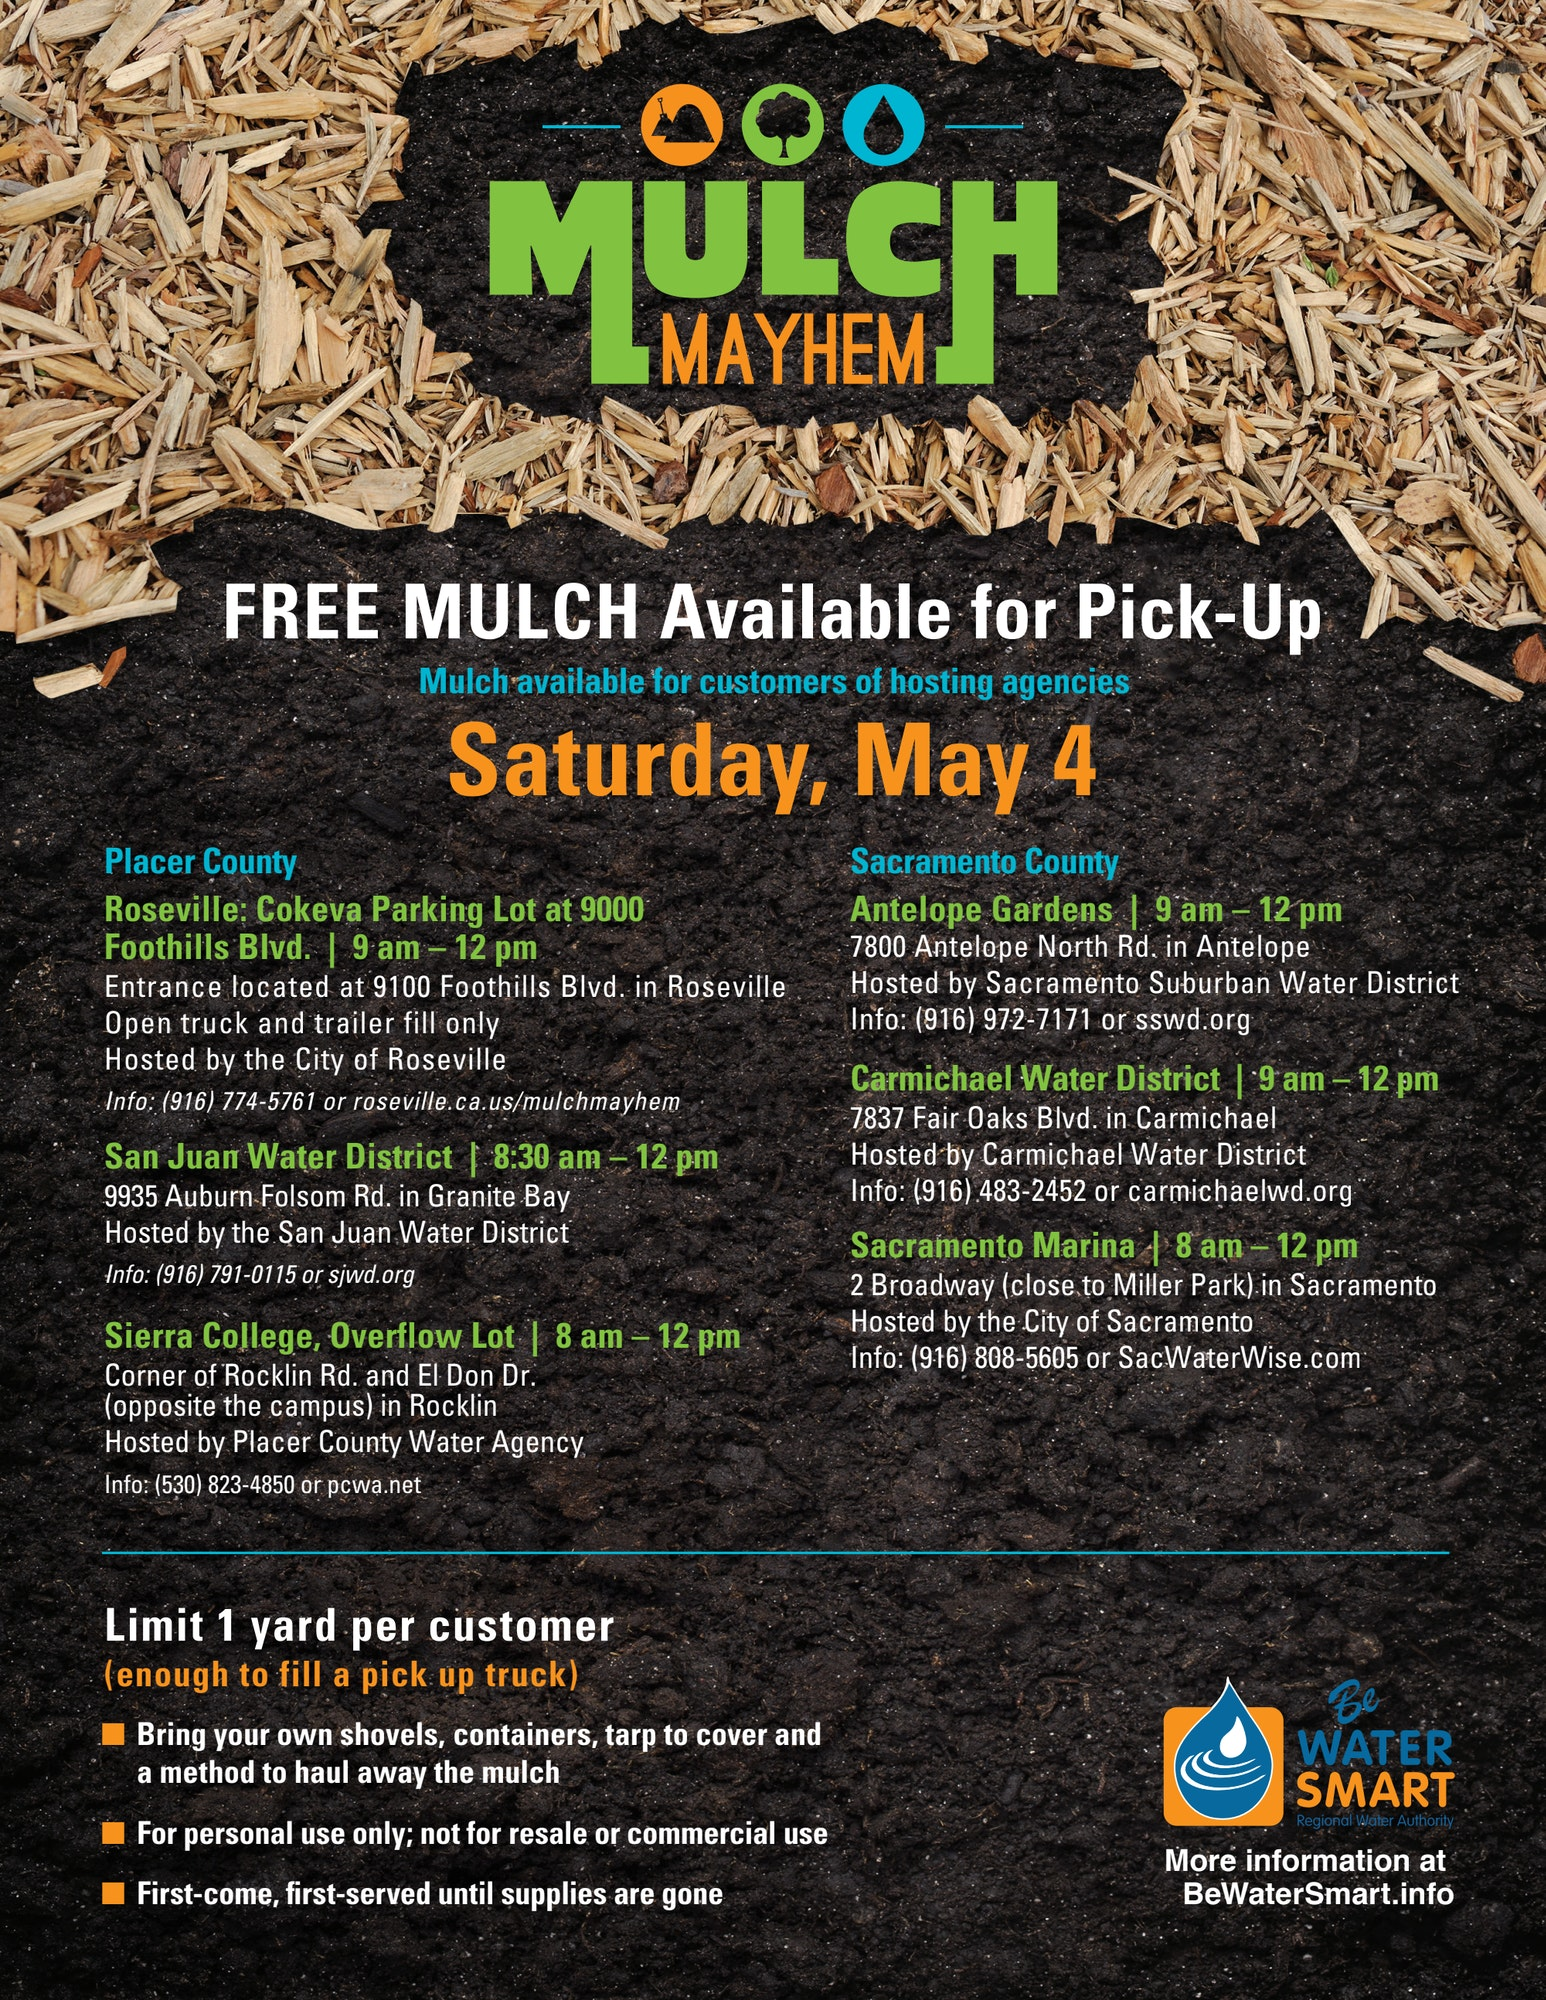 Mulch Mayhem info